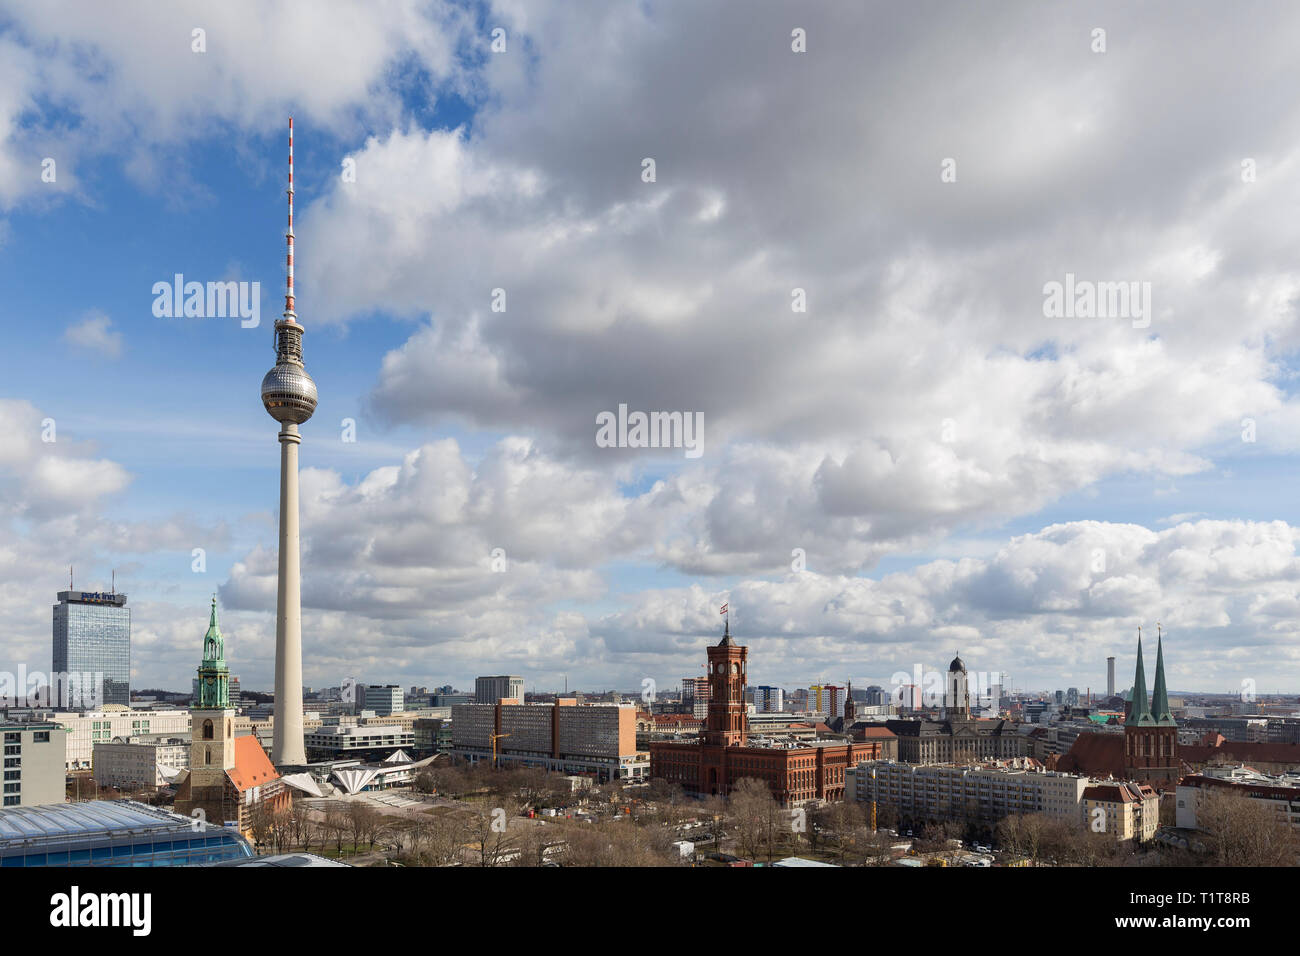 St. Marienkirche, Fernsehturm TV Tower, Rotes Rathaus and other landmarks and buildings at the downtown Berlin, Germany, on a sunny day in March. Stock Photo